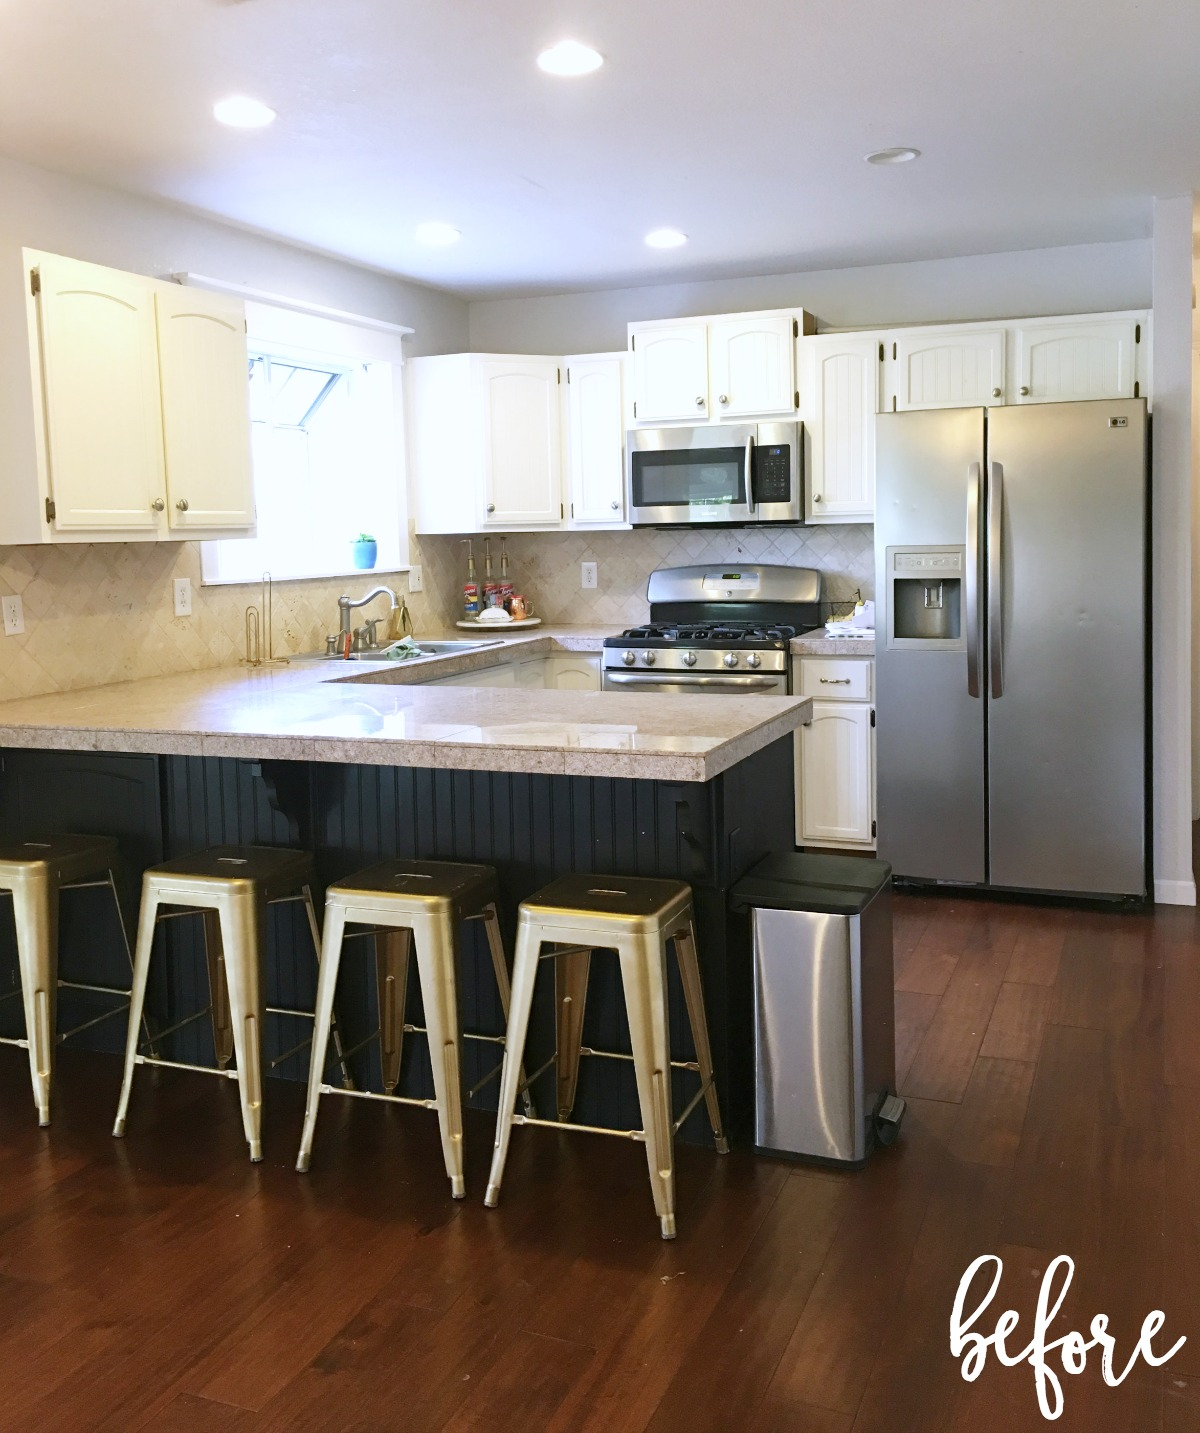 Kitchen Renovation Plans: Prescott View Home Reno: DIY Kitchen Remodel Reveal